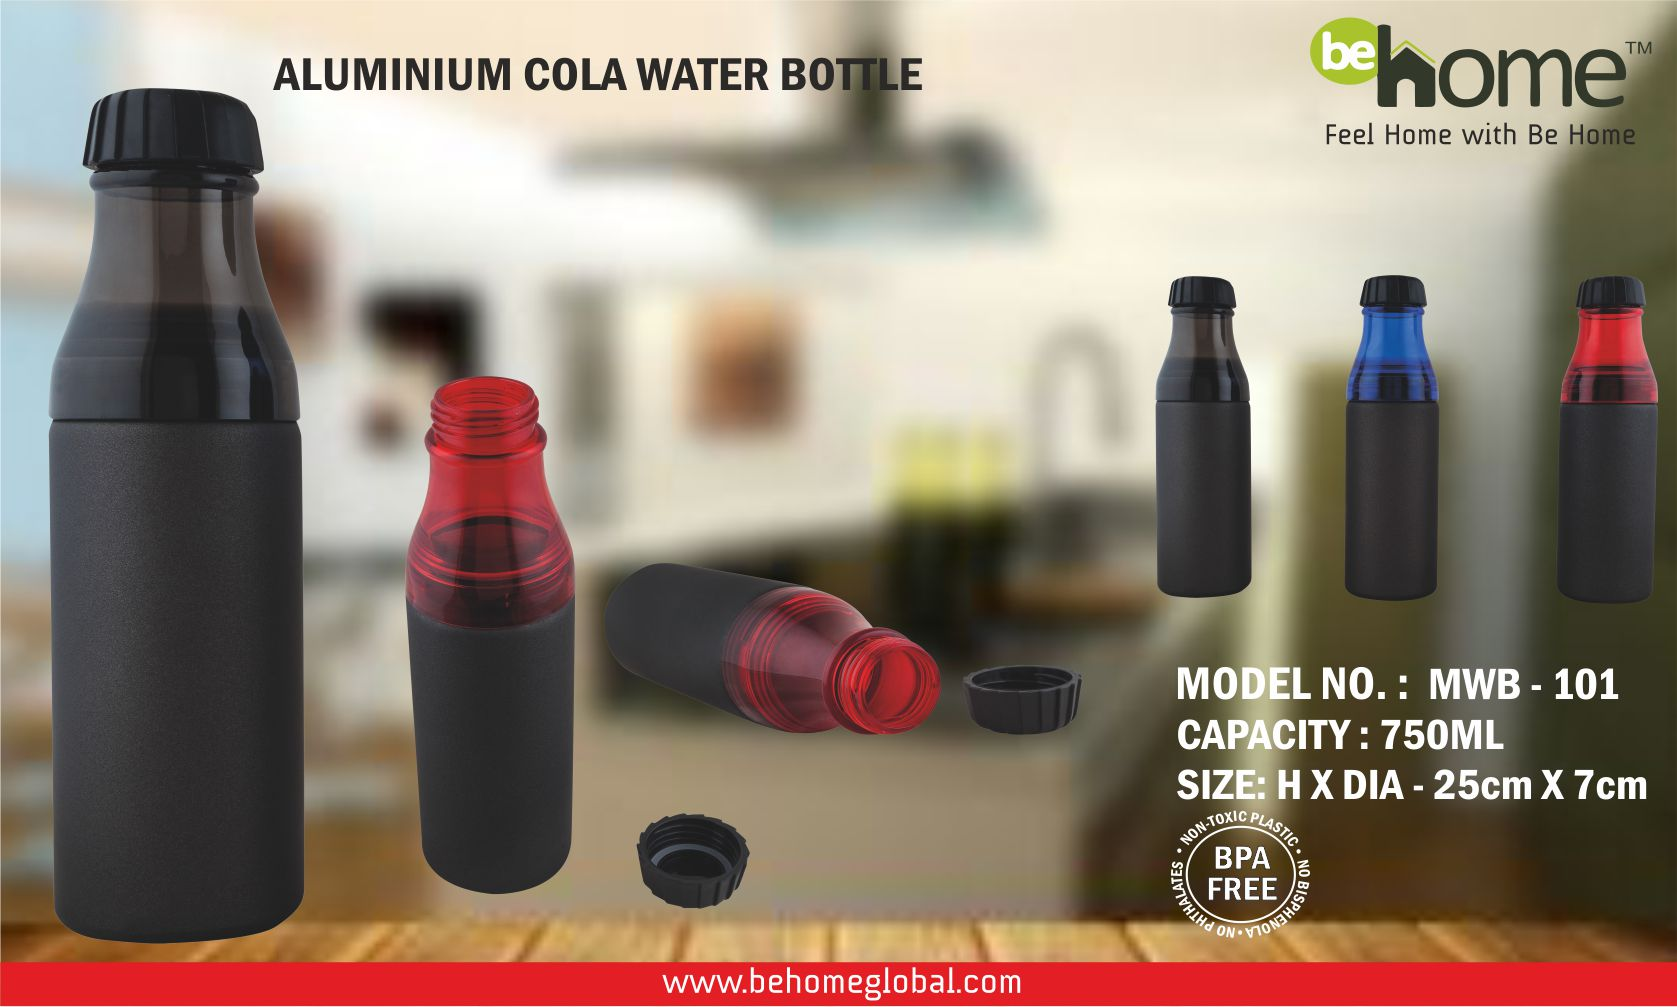 BeHome ALUMINIUM COLA WATER BOTTLE STURDY CONSTRUCTION MWB � 101